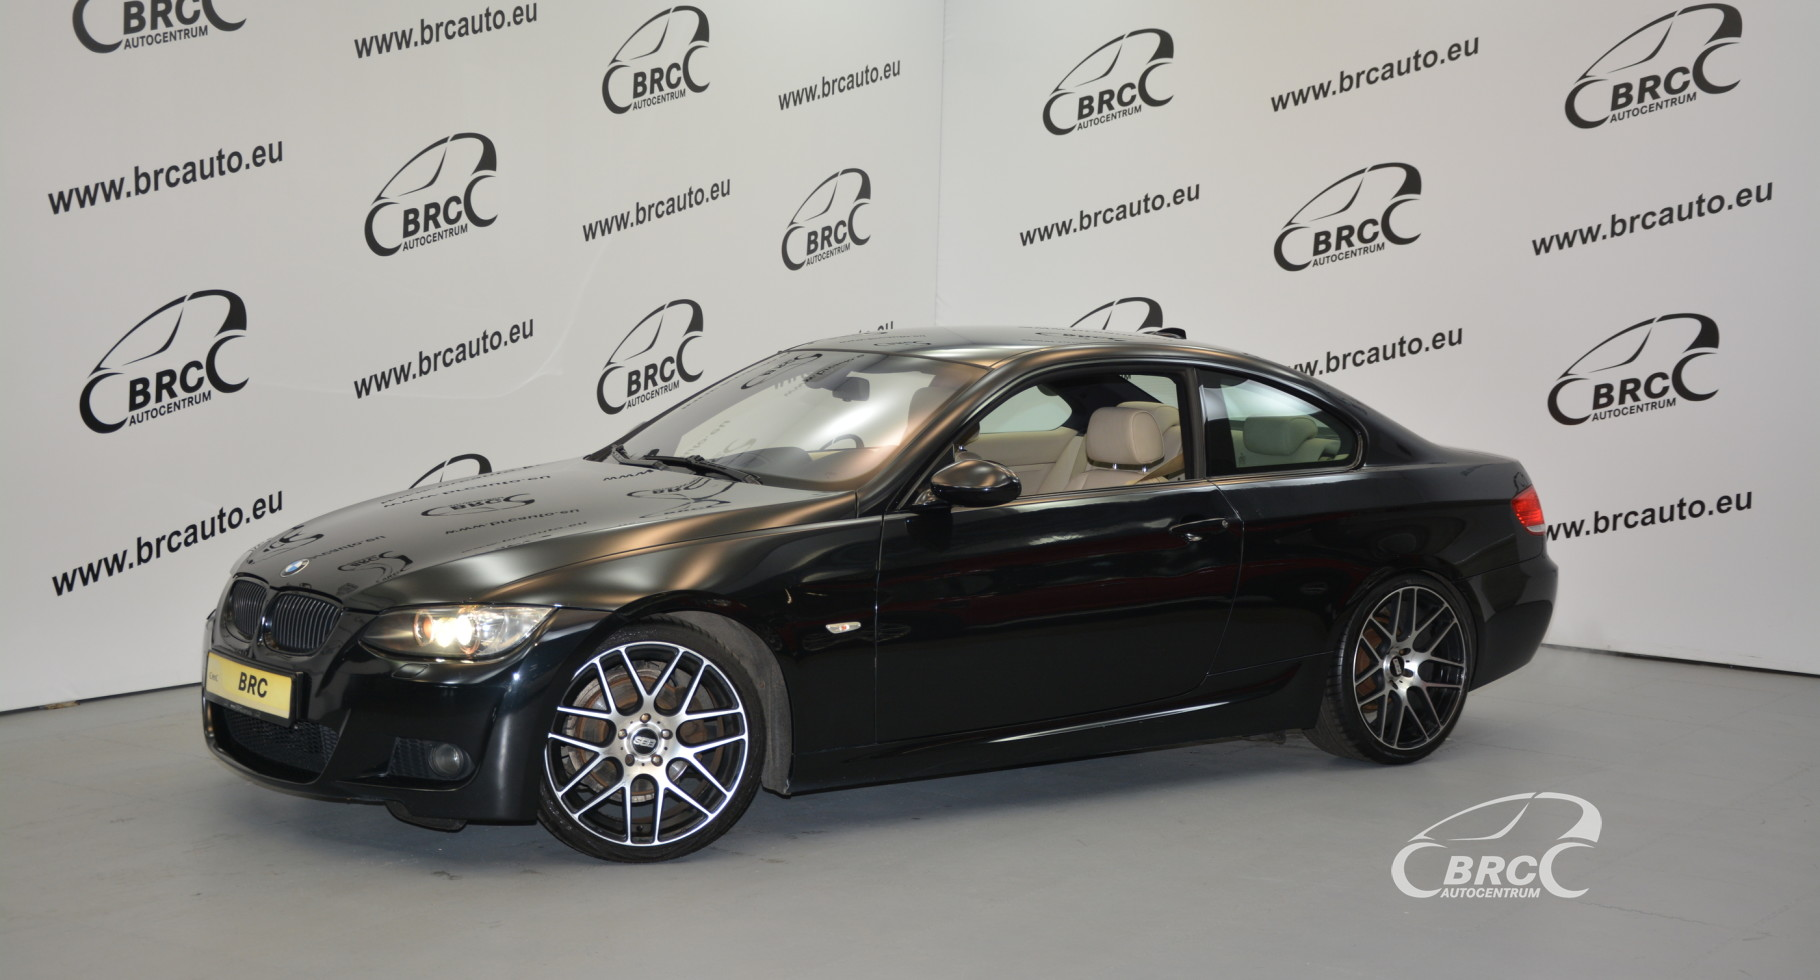 BMW 325 i Coupe M-packet Automatas